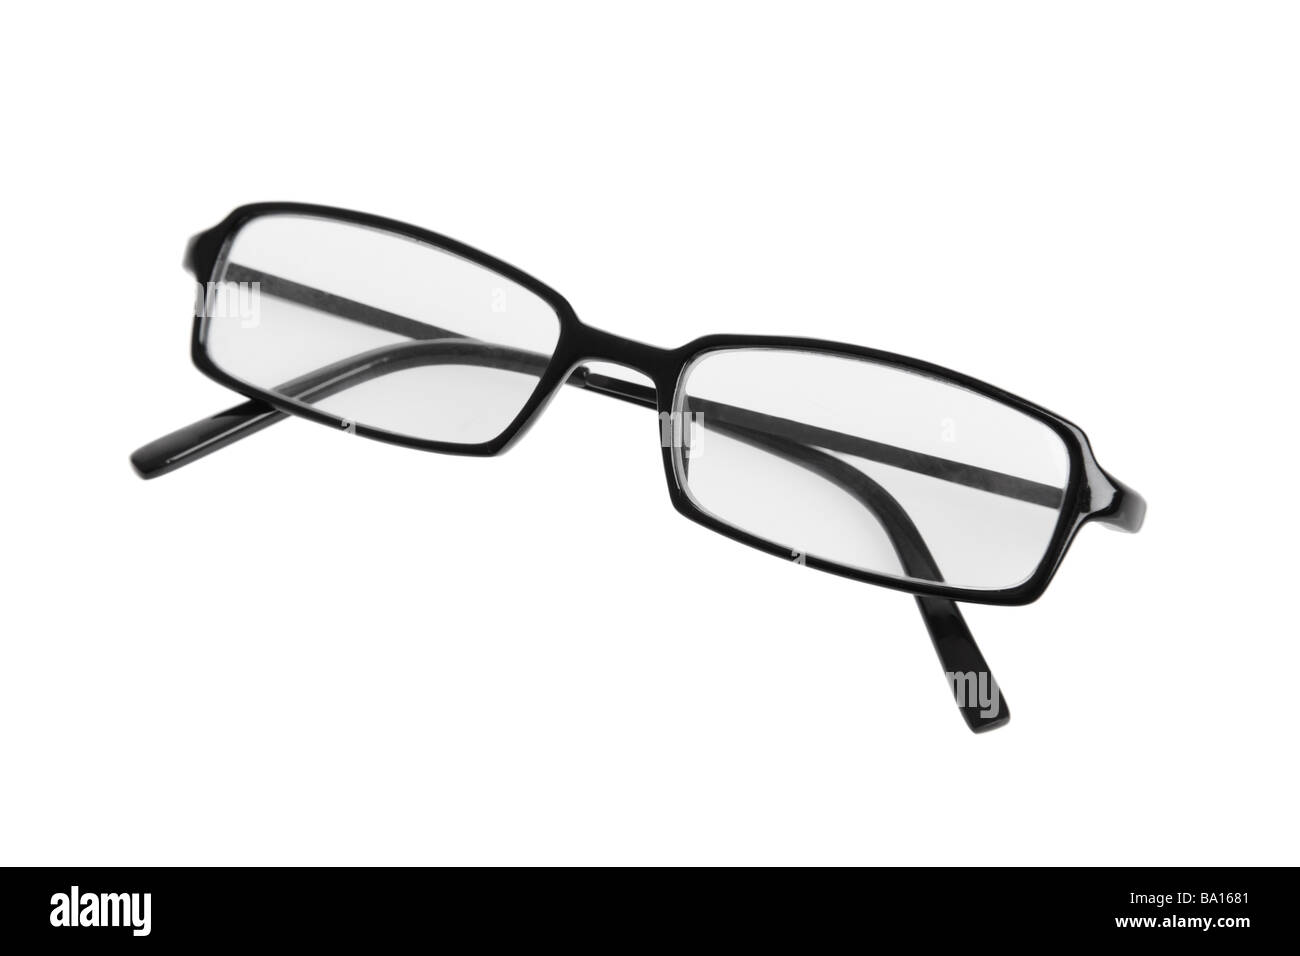 Reading glasses cutout on white background - Stock Image